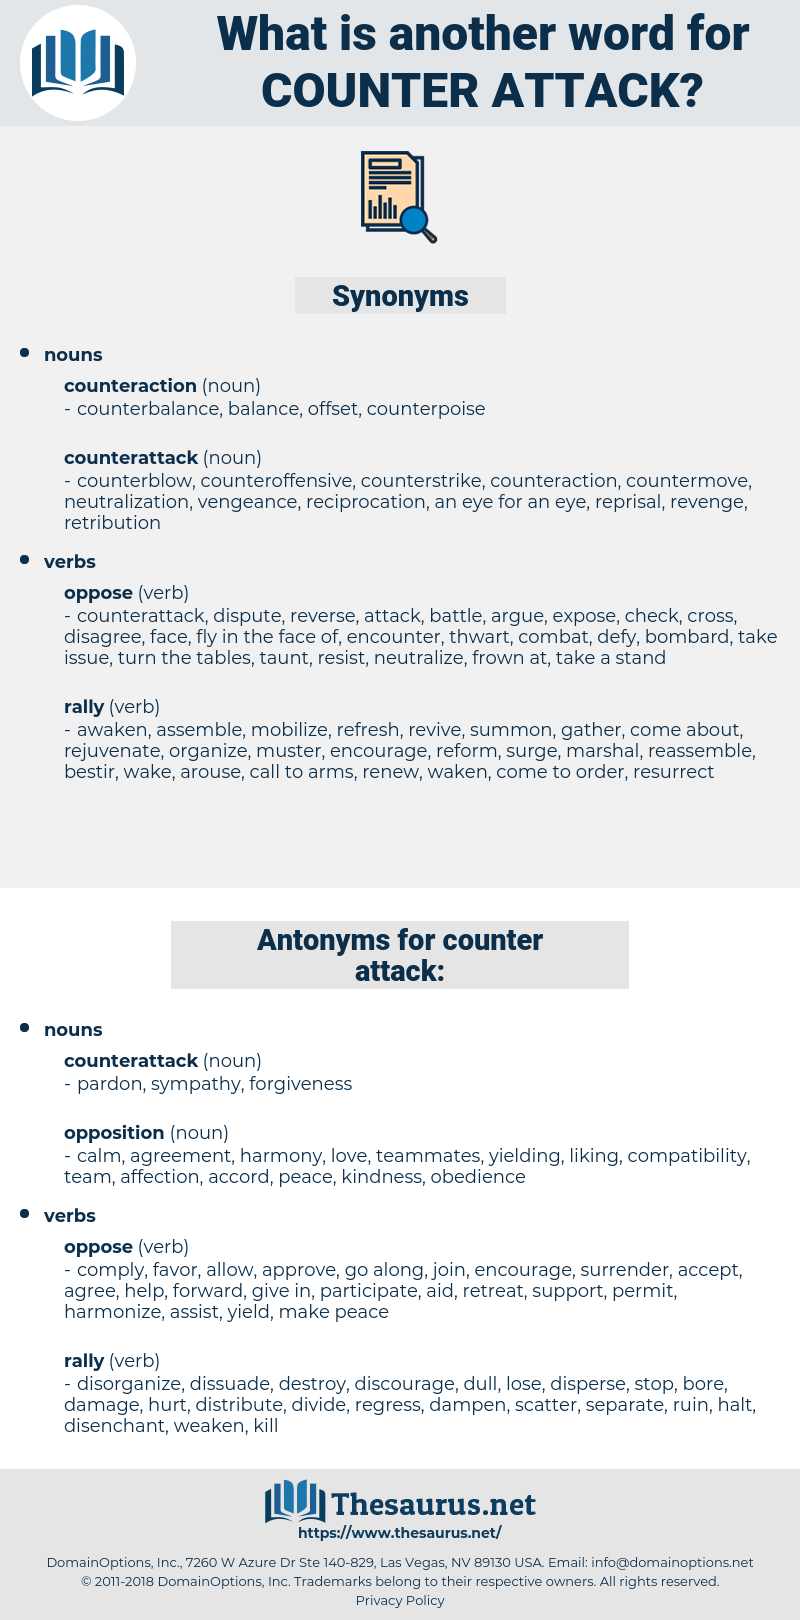 counter attack, synonym counter attack, another word for counter attack, words like counter attack, thesaurus counter attack